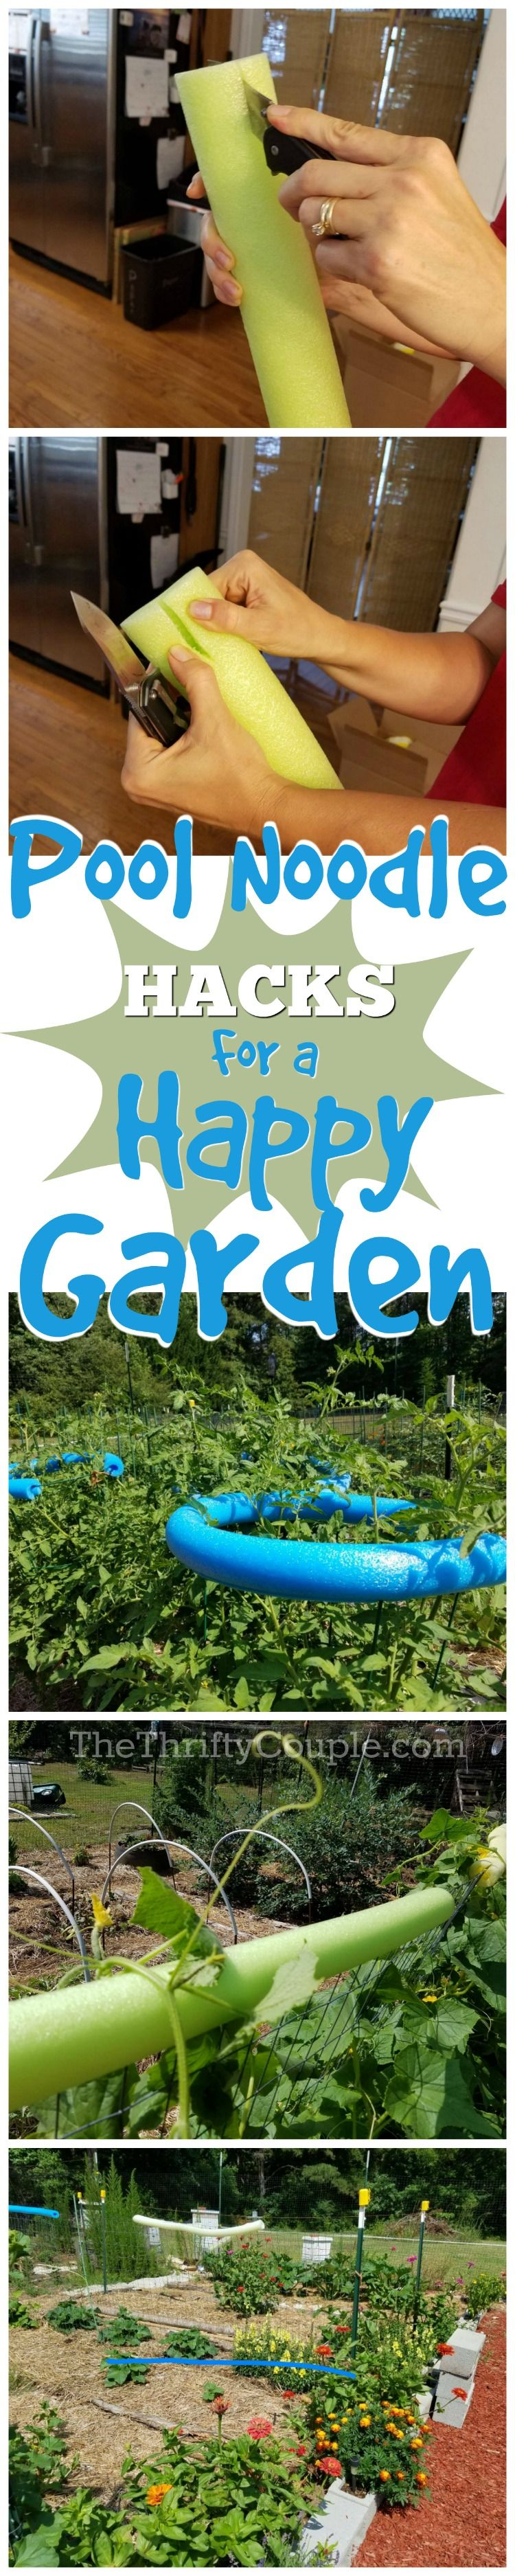 Why You Should Use Pool Noodles In Your Garden Pool Noodle Gardening Organic Gardening Tips Garden Pool Pool Noodles